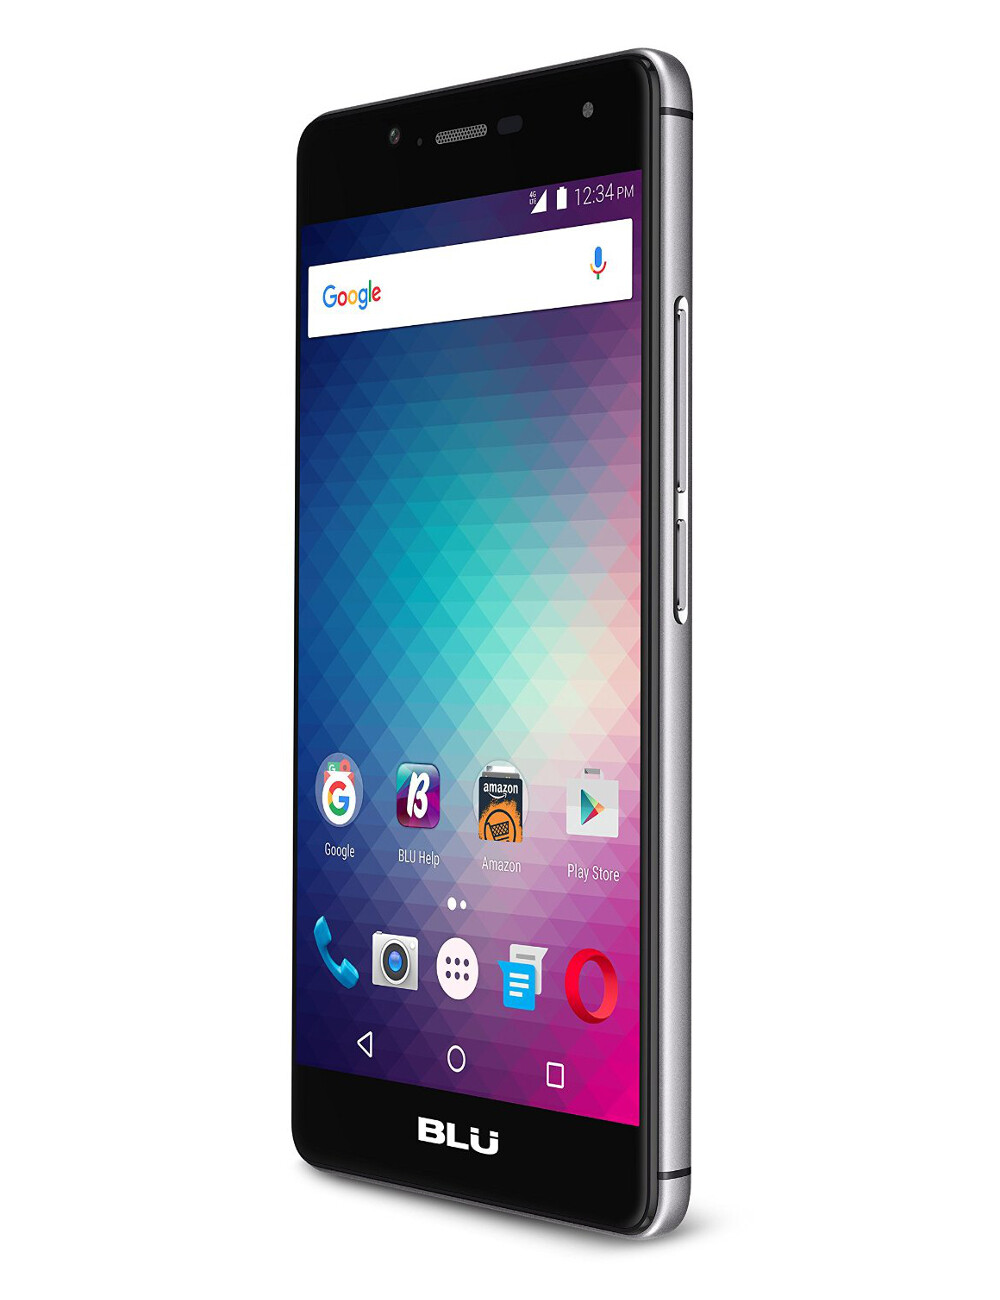 Shop for T-Mobile Cell Phones. Buy products such as (Email Delivery) T-Mobile Monthly4G $50 Unlimited Talk, Unlimited Text, and Unlimited Web access (first MB at .